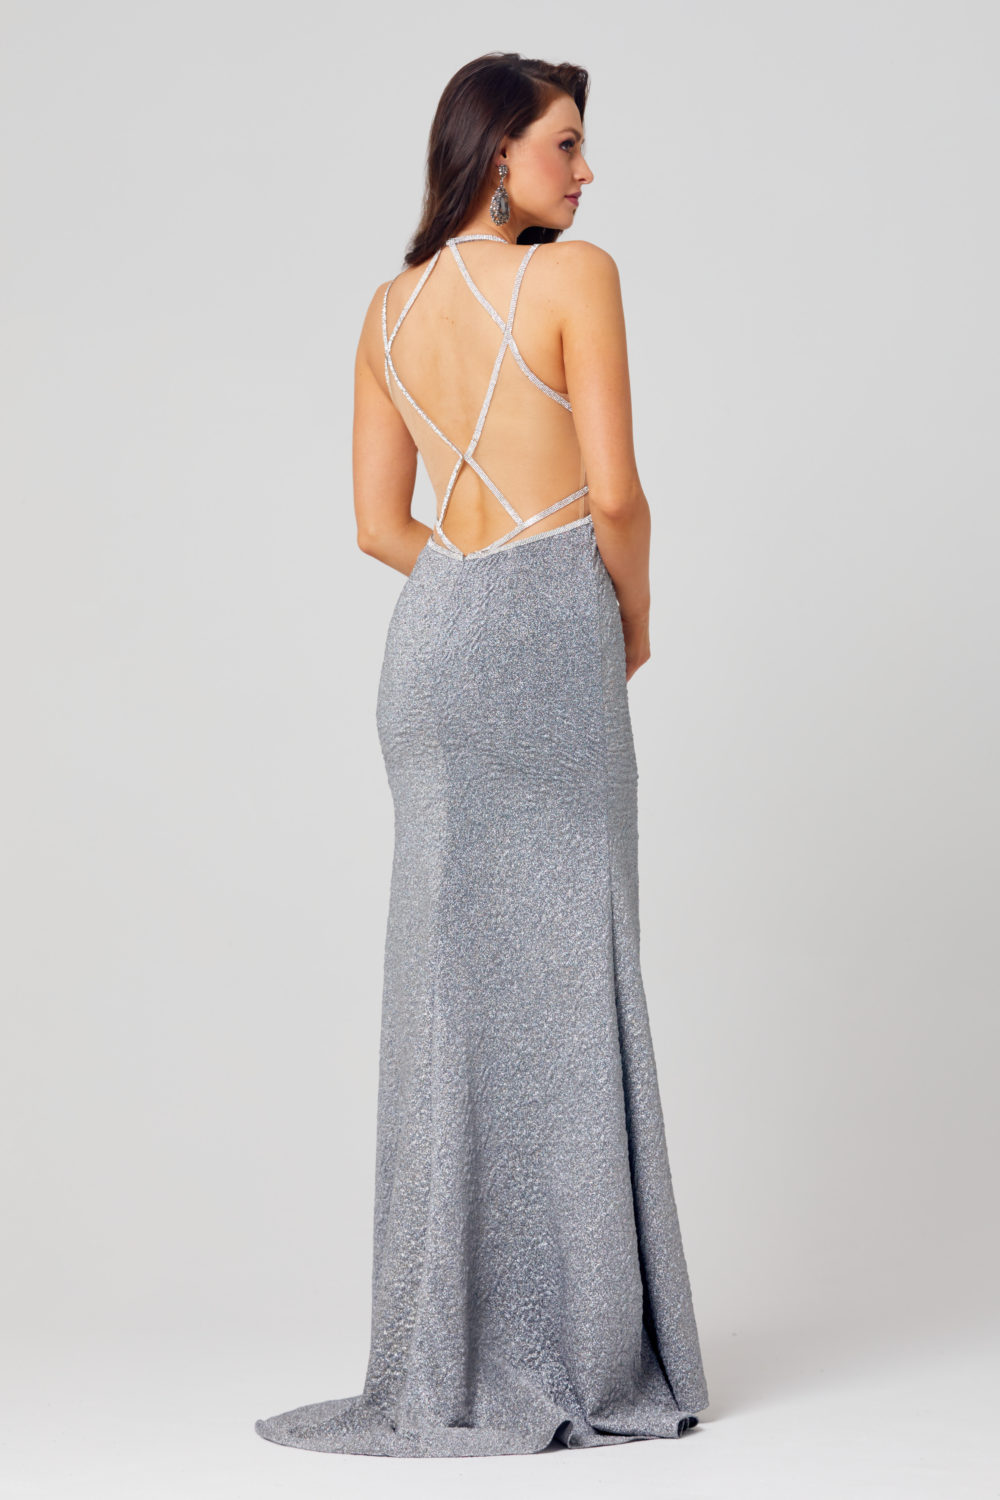 Noemi Fitted Formal Dress - PO868-Back